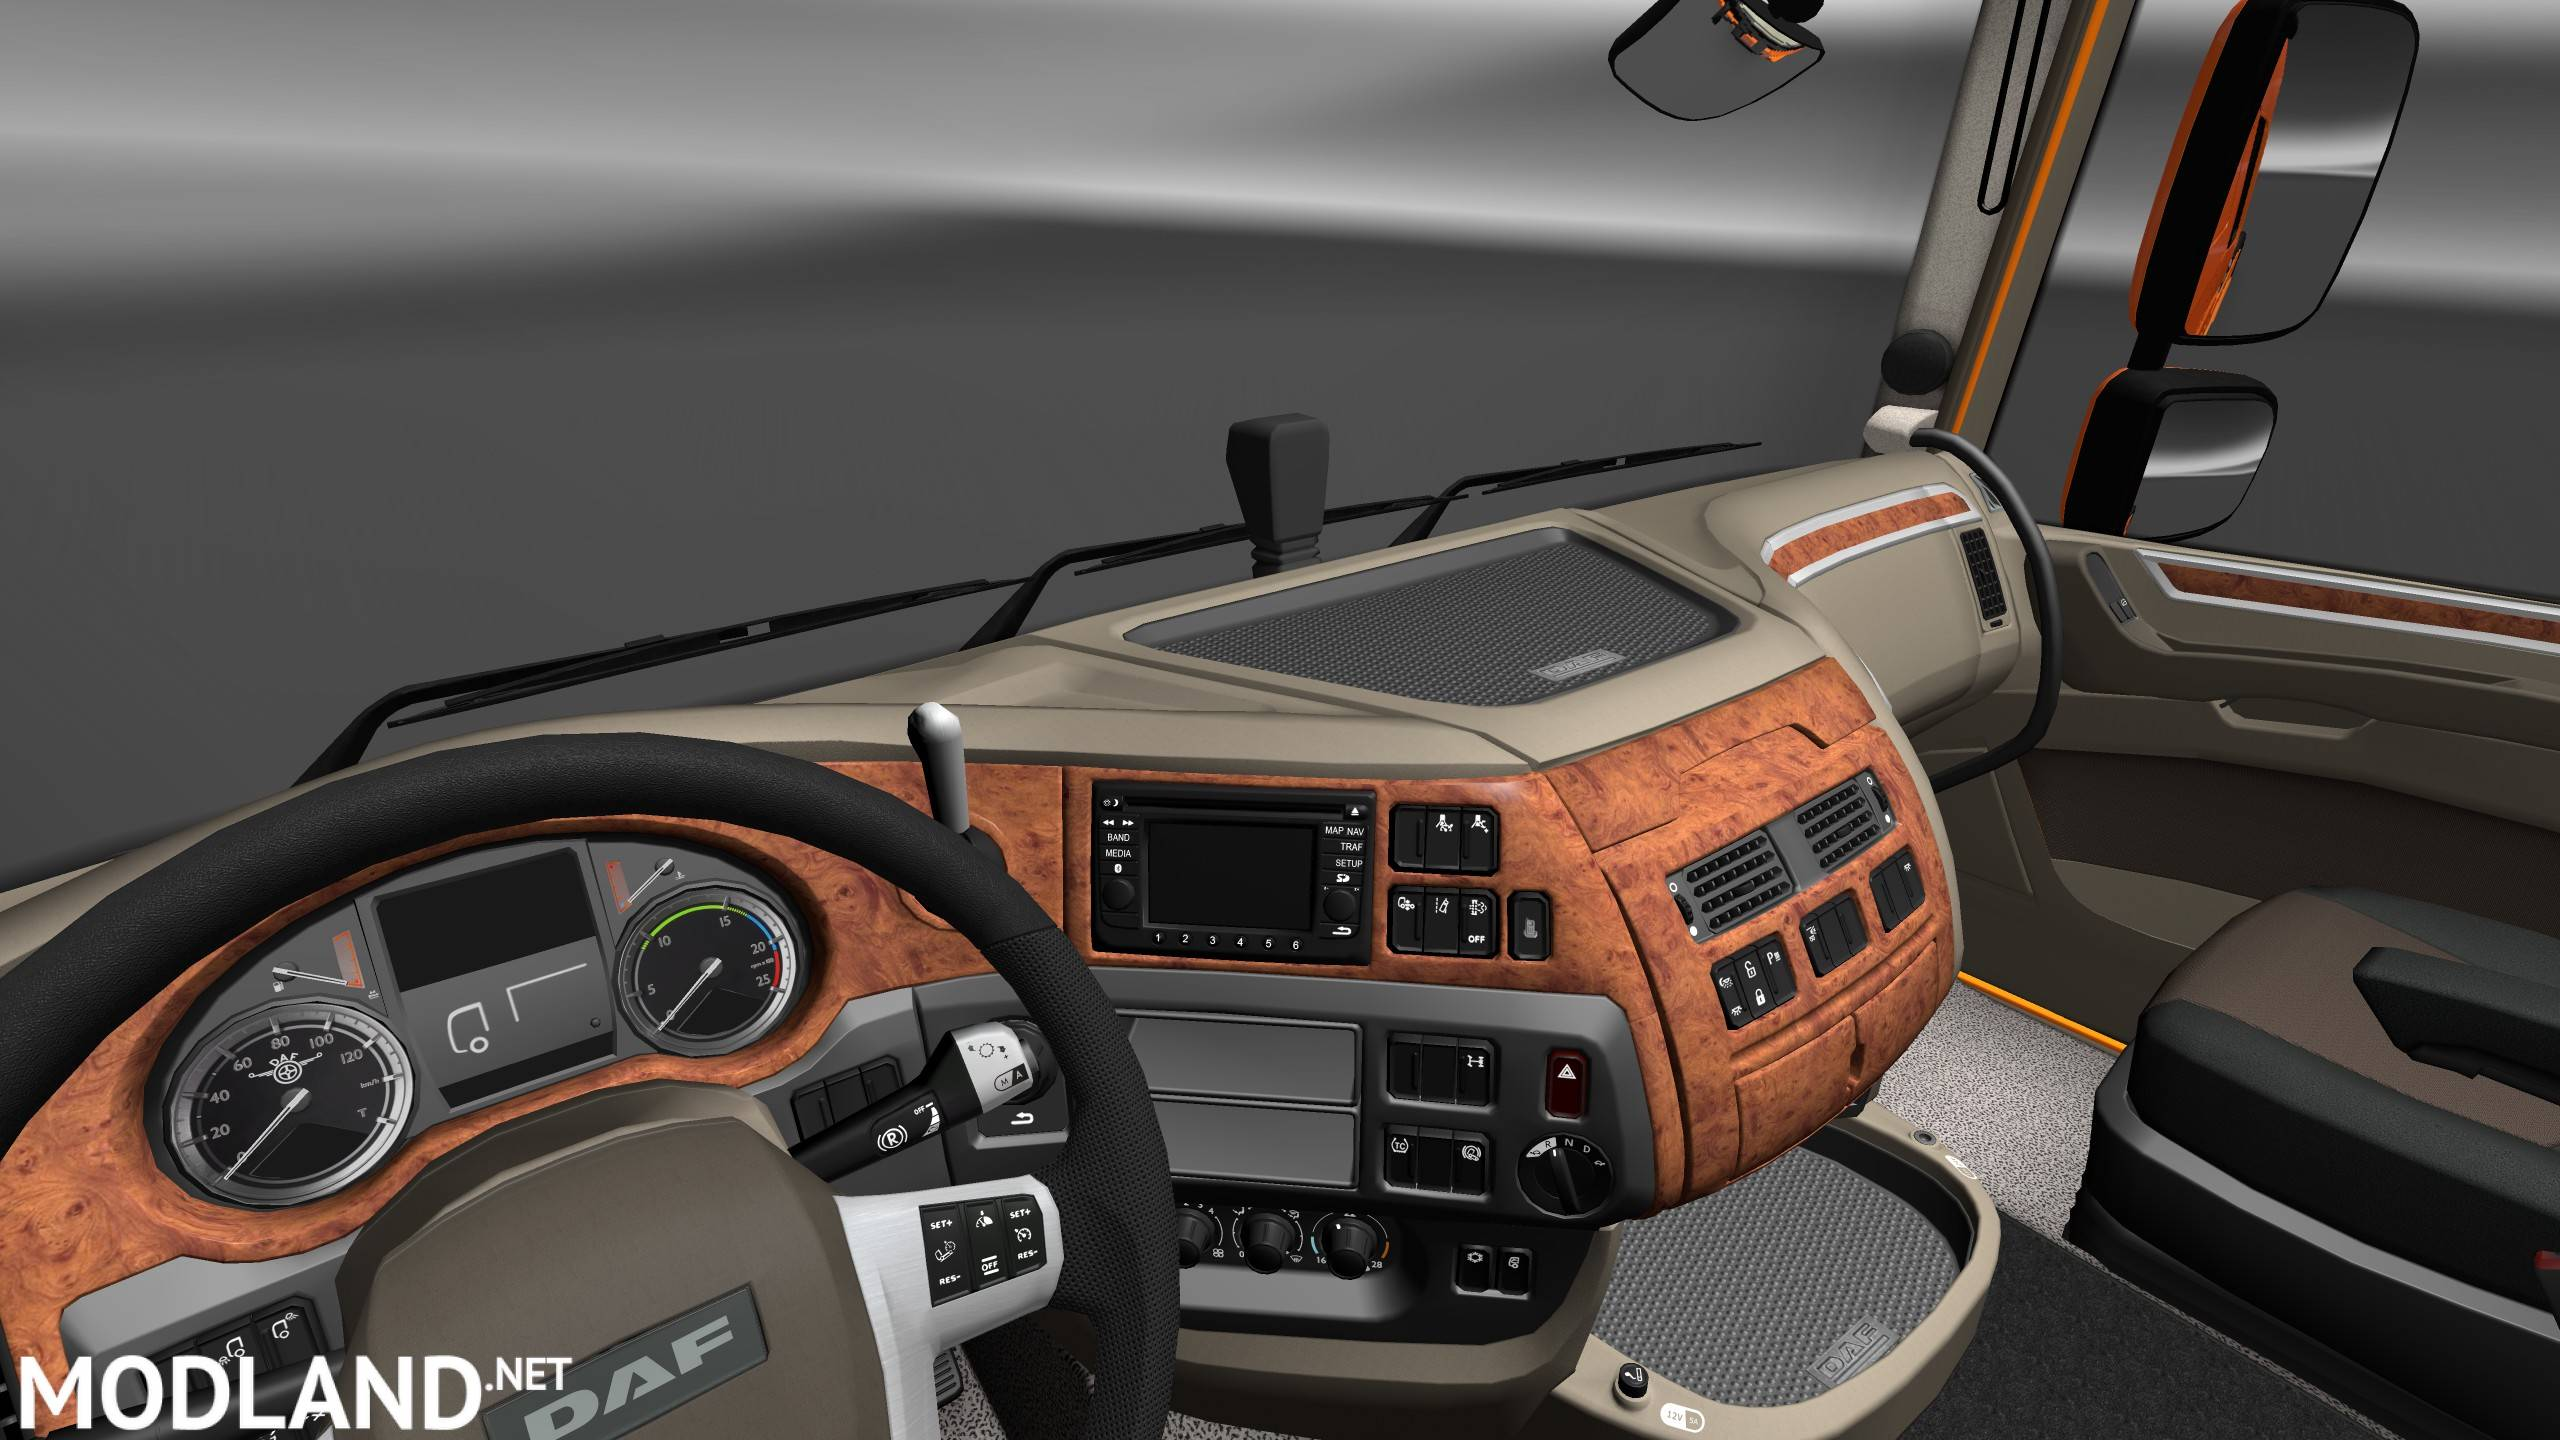 DAF XF 106 Interior/Exterior Rework mod for ETS 2